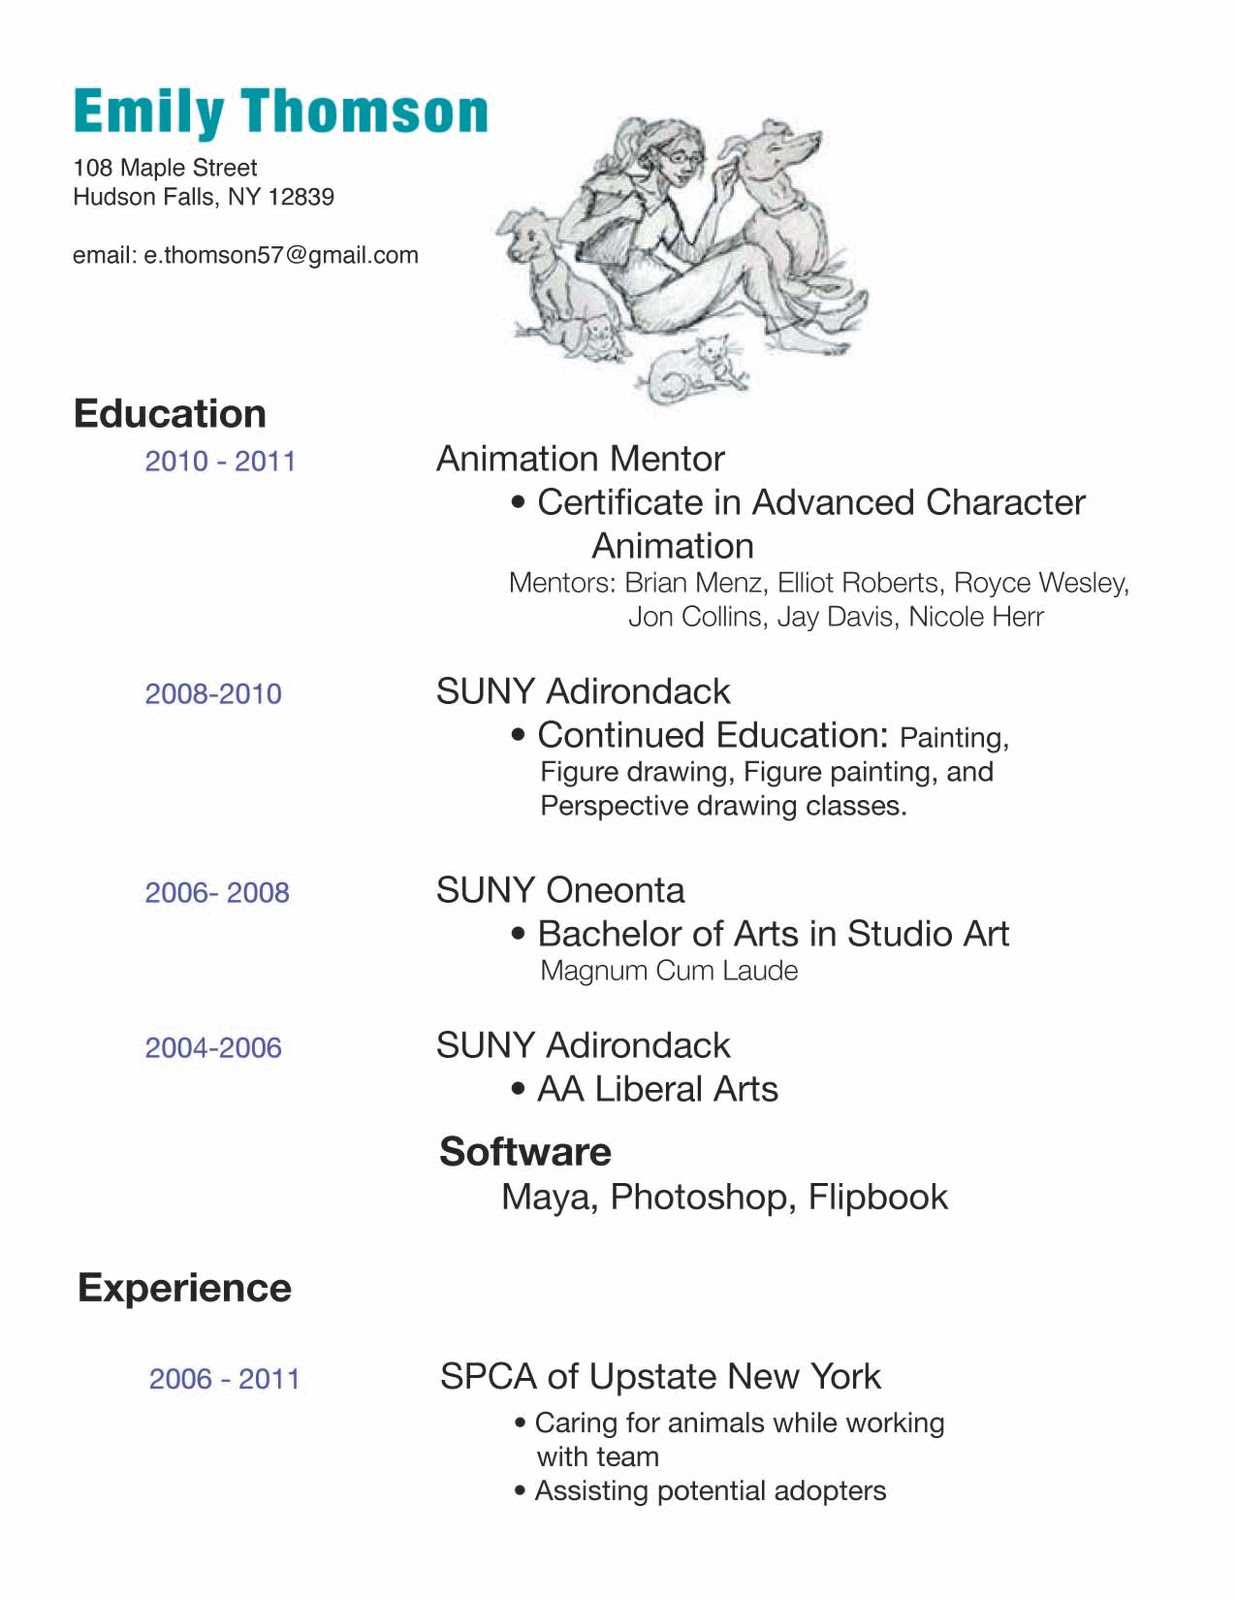 Matchmove Artist Resume 3d Resumes Elita Mydearest Co